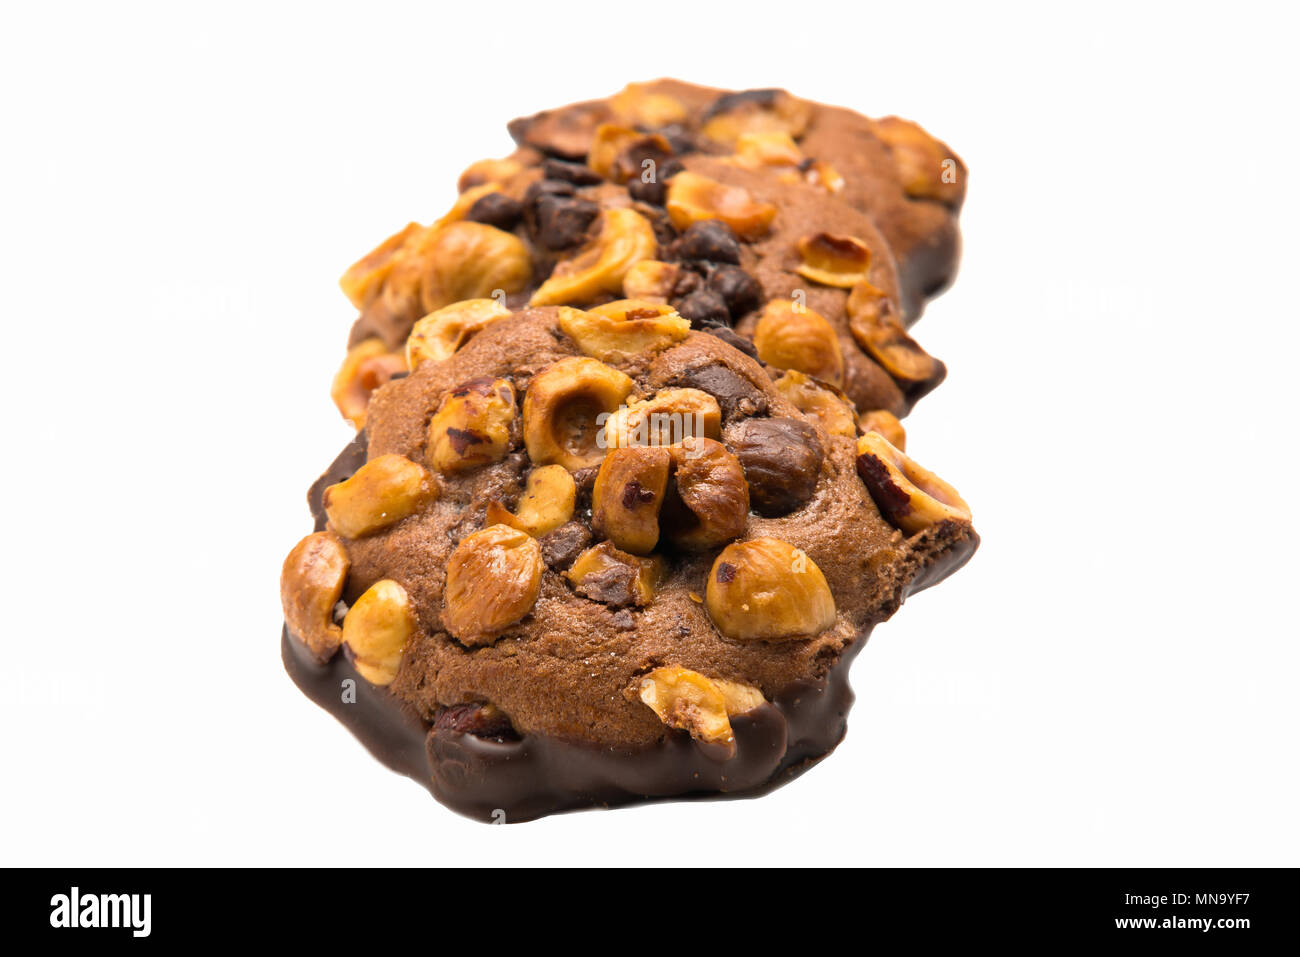 delicious artisan chocolate and almond cookies isolated on white background - Stock Image